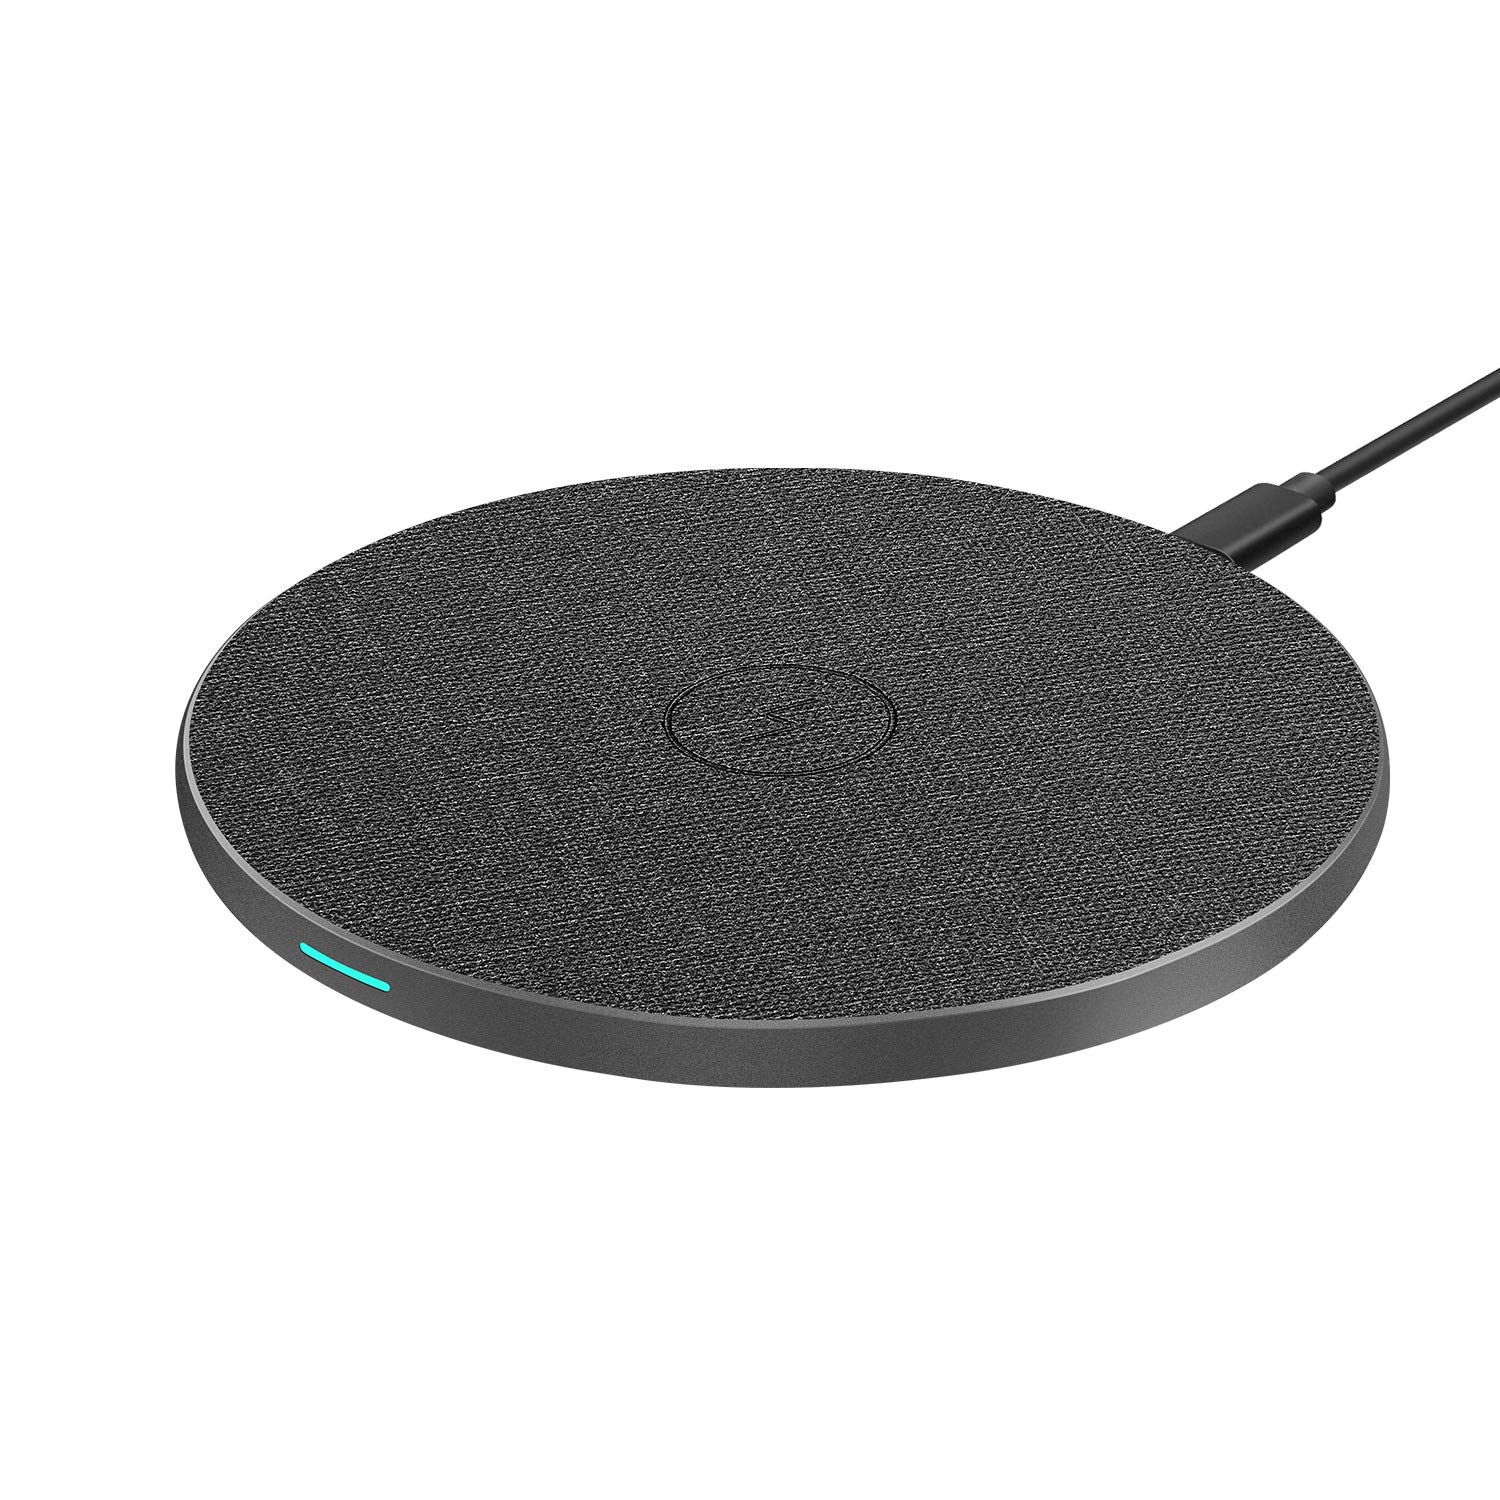 WisFox Wireless Charger Qi-Certified 10W Max Fast Universal Wireless Charging for iPhone 11/11 Pro/11 Pro Max/XS MAX/XR/XS/8 Plus, Galaxy Note 10/Note 10 Plus/S10/S10 Plus/S10E(No AC Adapter) (Black)